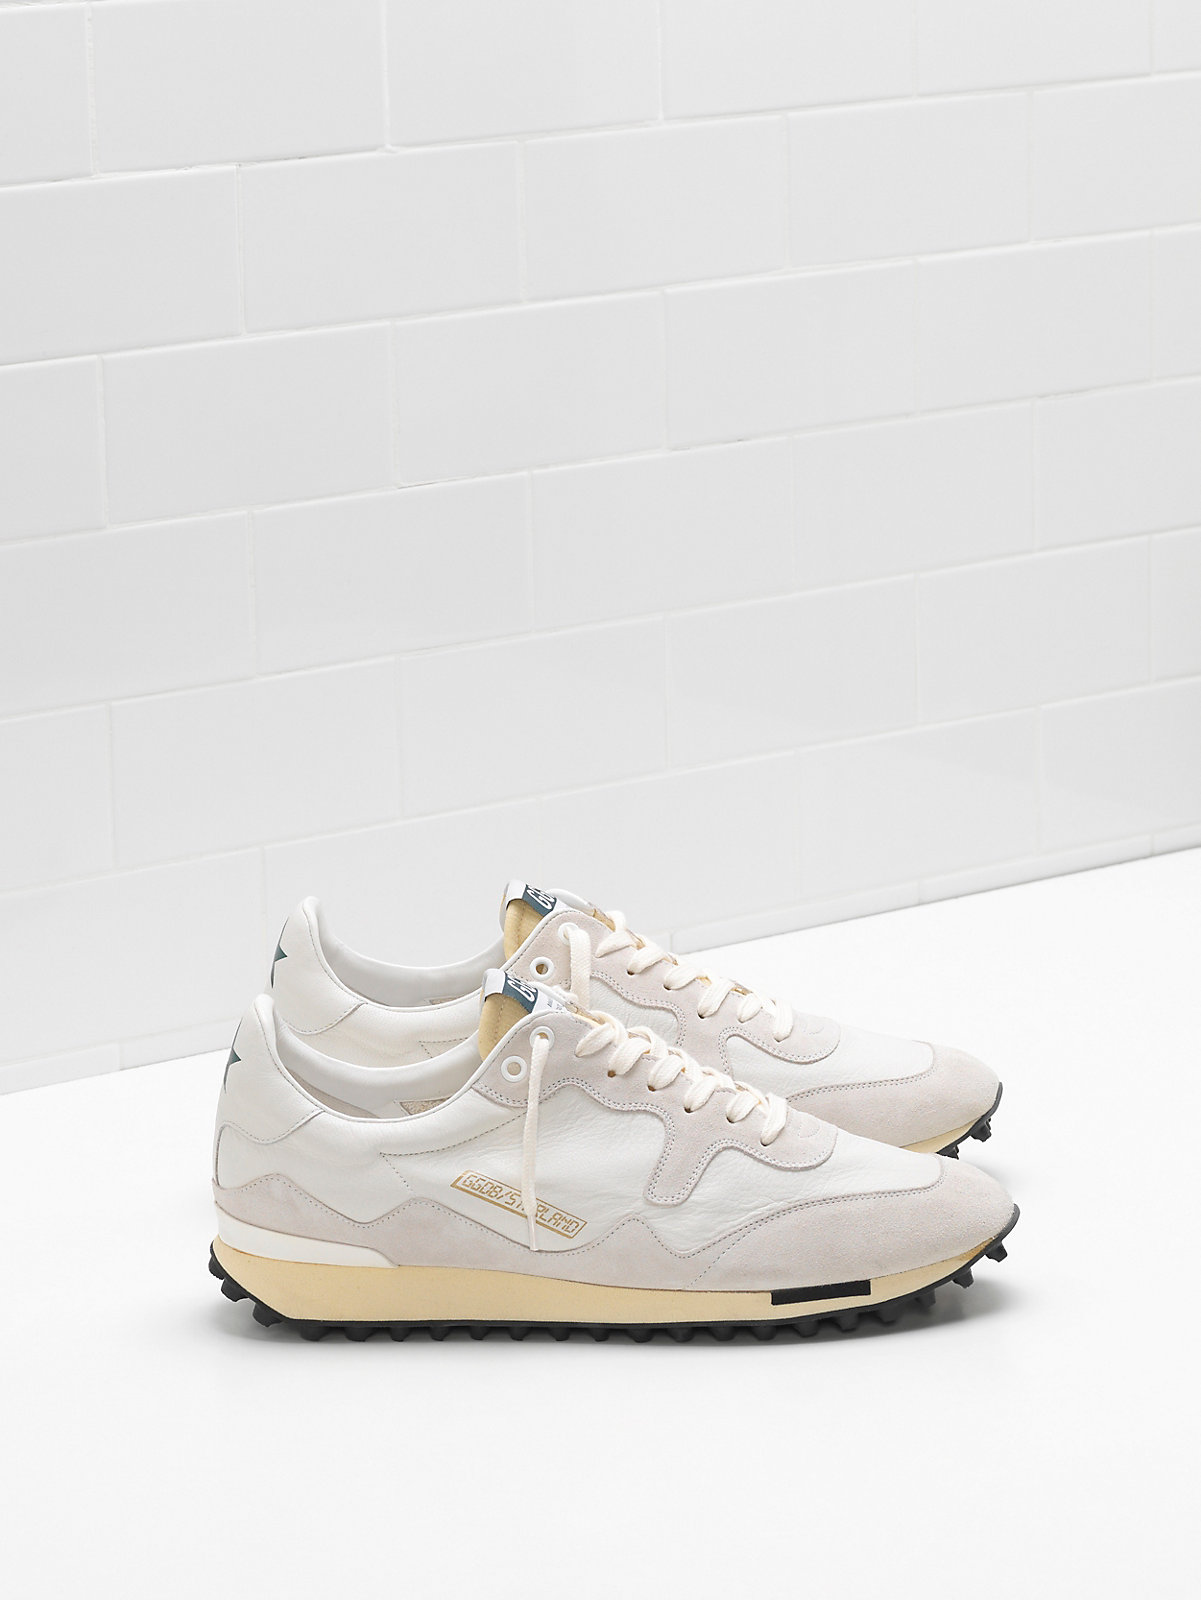 Kolor Magazine Golden Goose Sneaker Styles Without The Dirty Look Starland.jpg